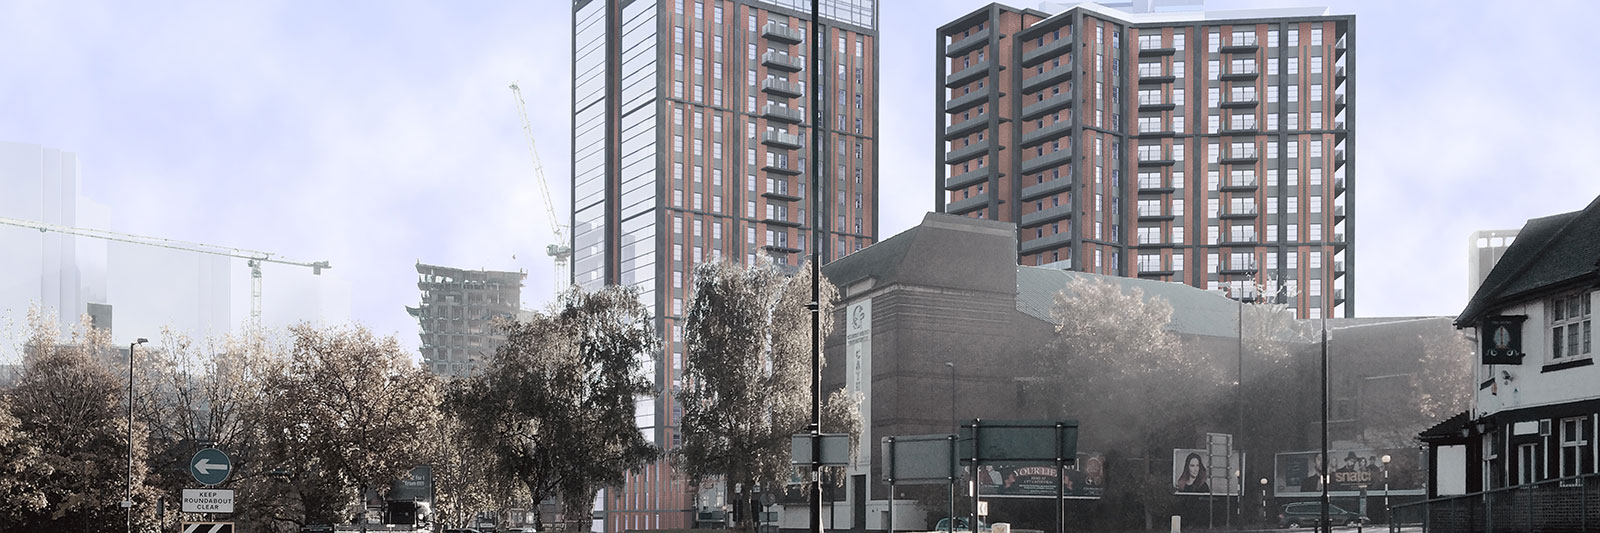 CGI view of the proposed development at Woolwich Keep